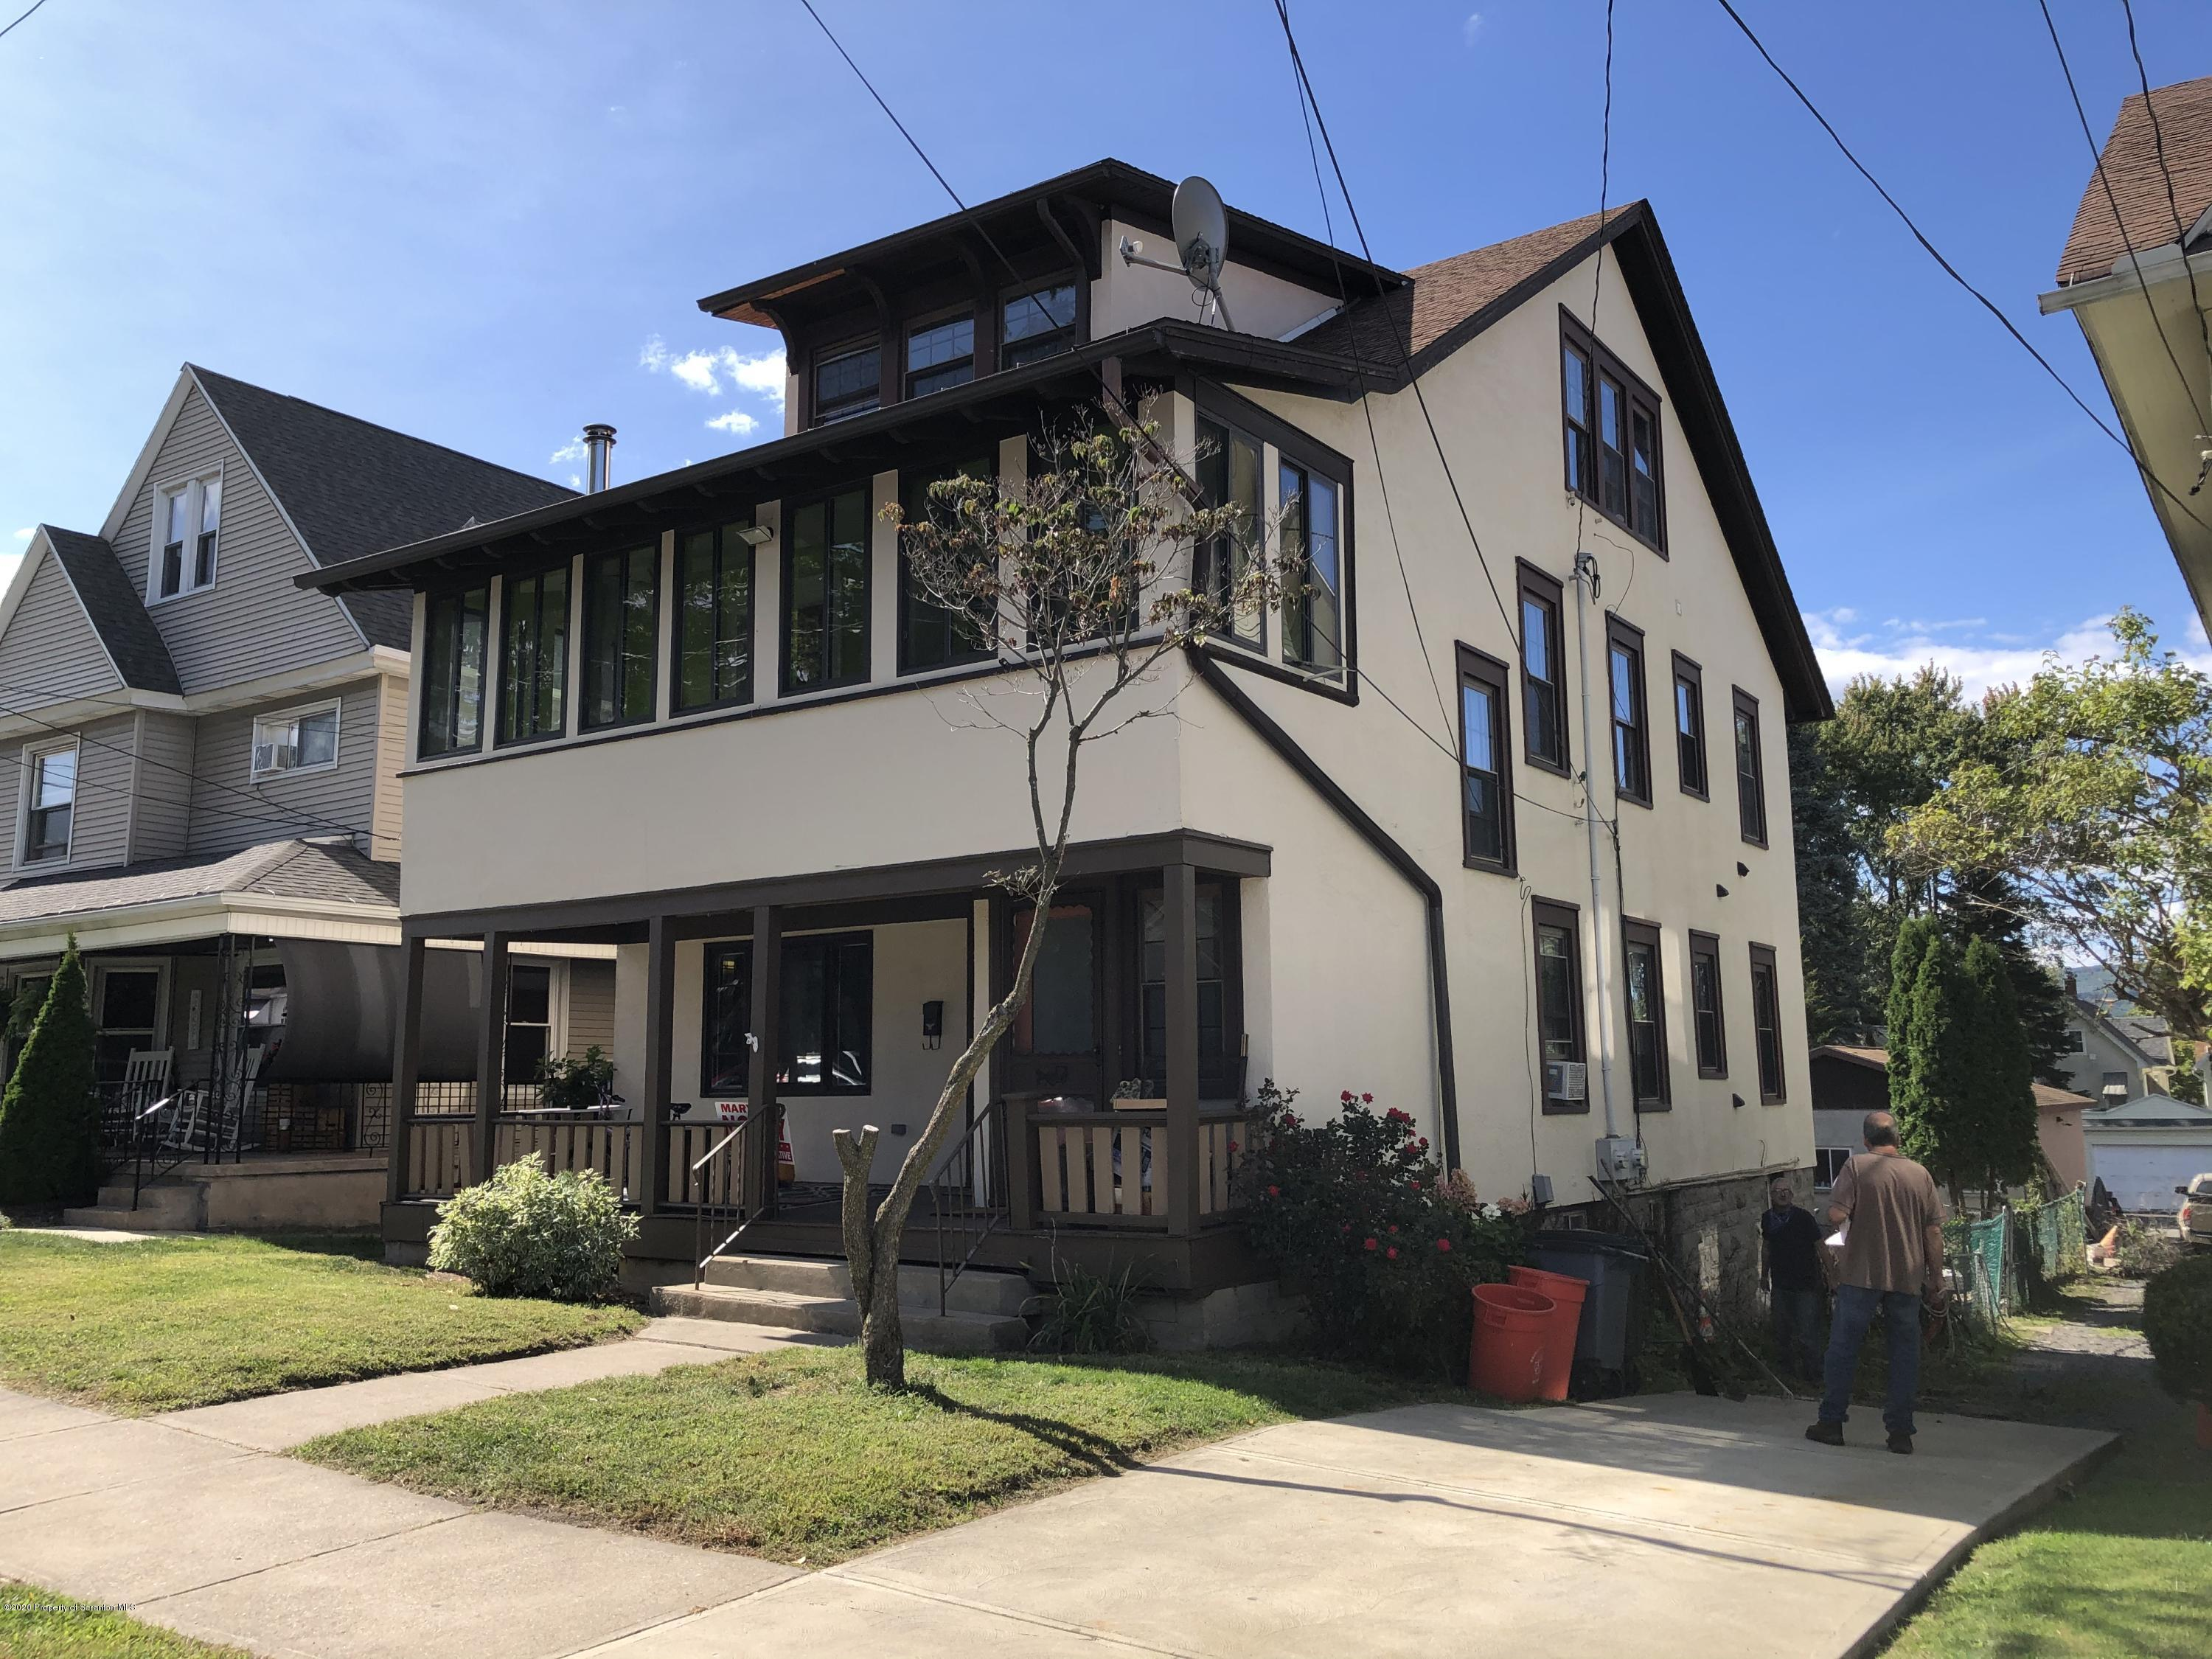 1735-1737 Quincy Ave, Dunmore, Pennsylvania 18509, ,Multi-Family,For Sale,Quincy,20-3895